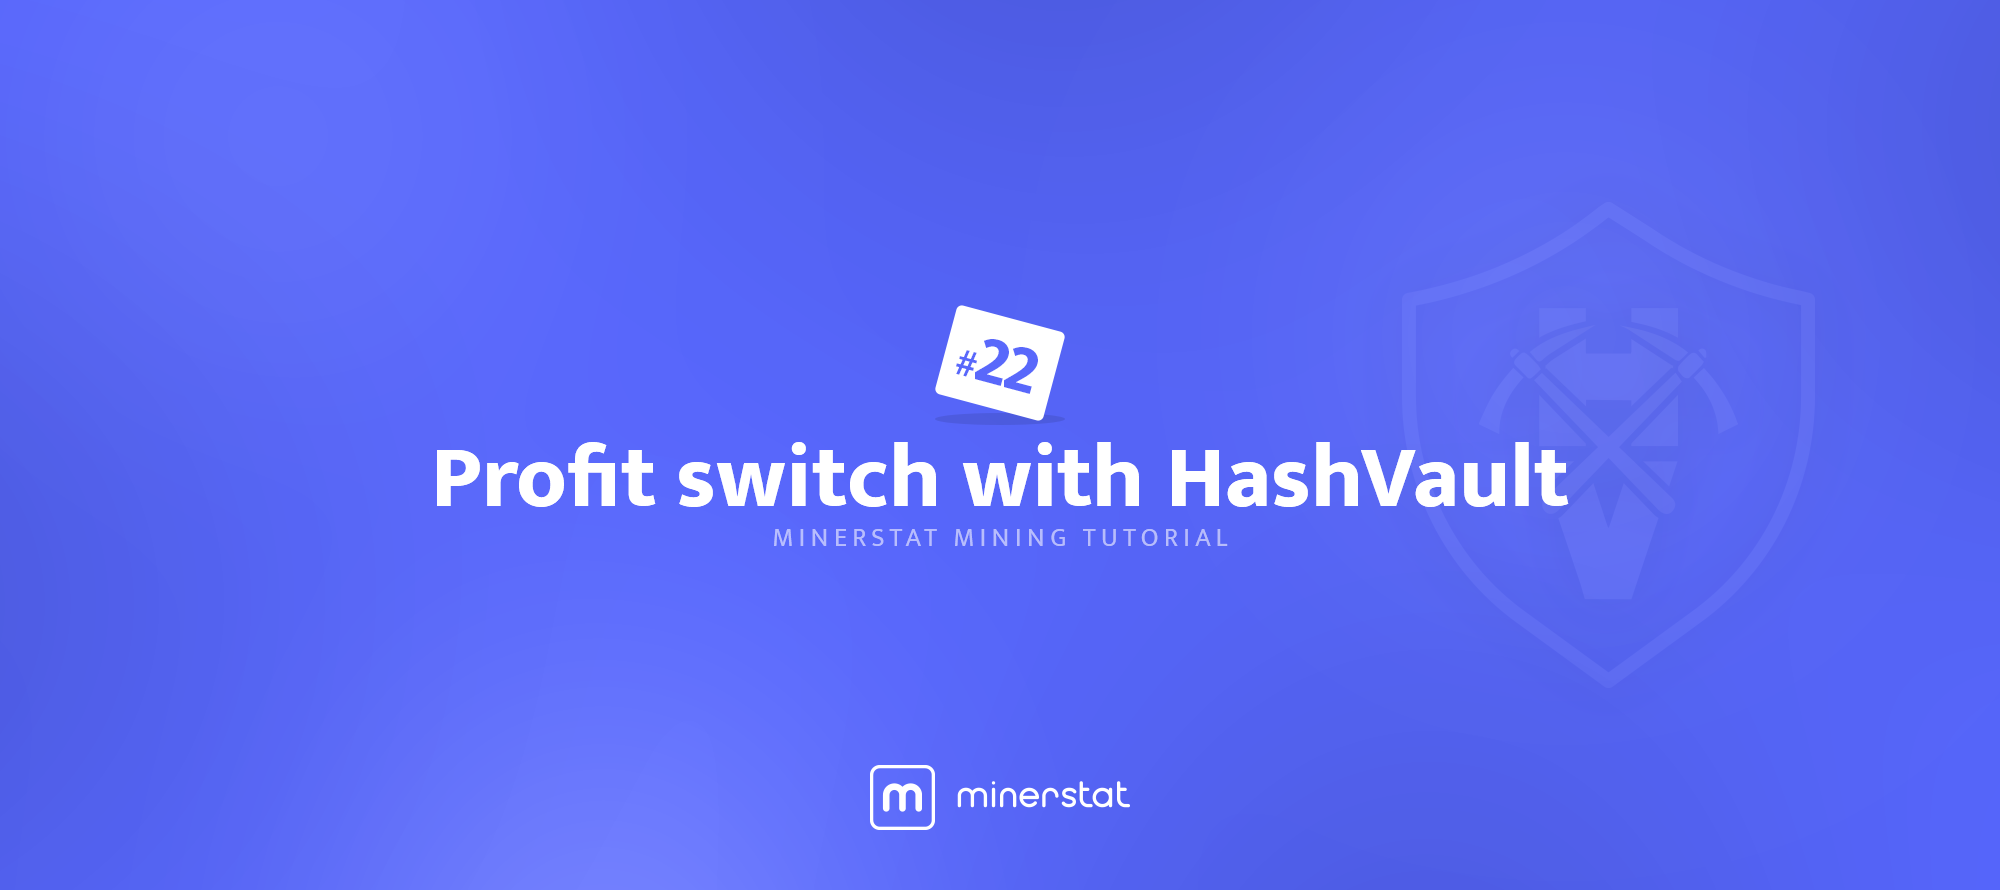 minerstat mining tutorial #22: Profit switch with HashVault